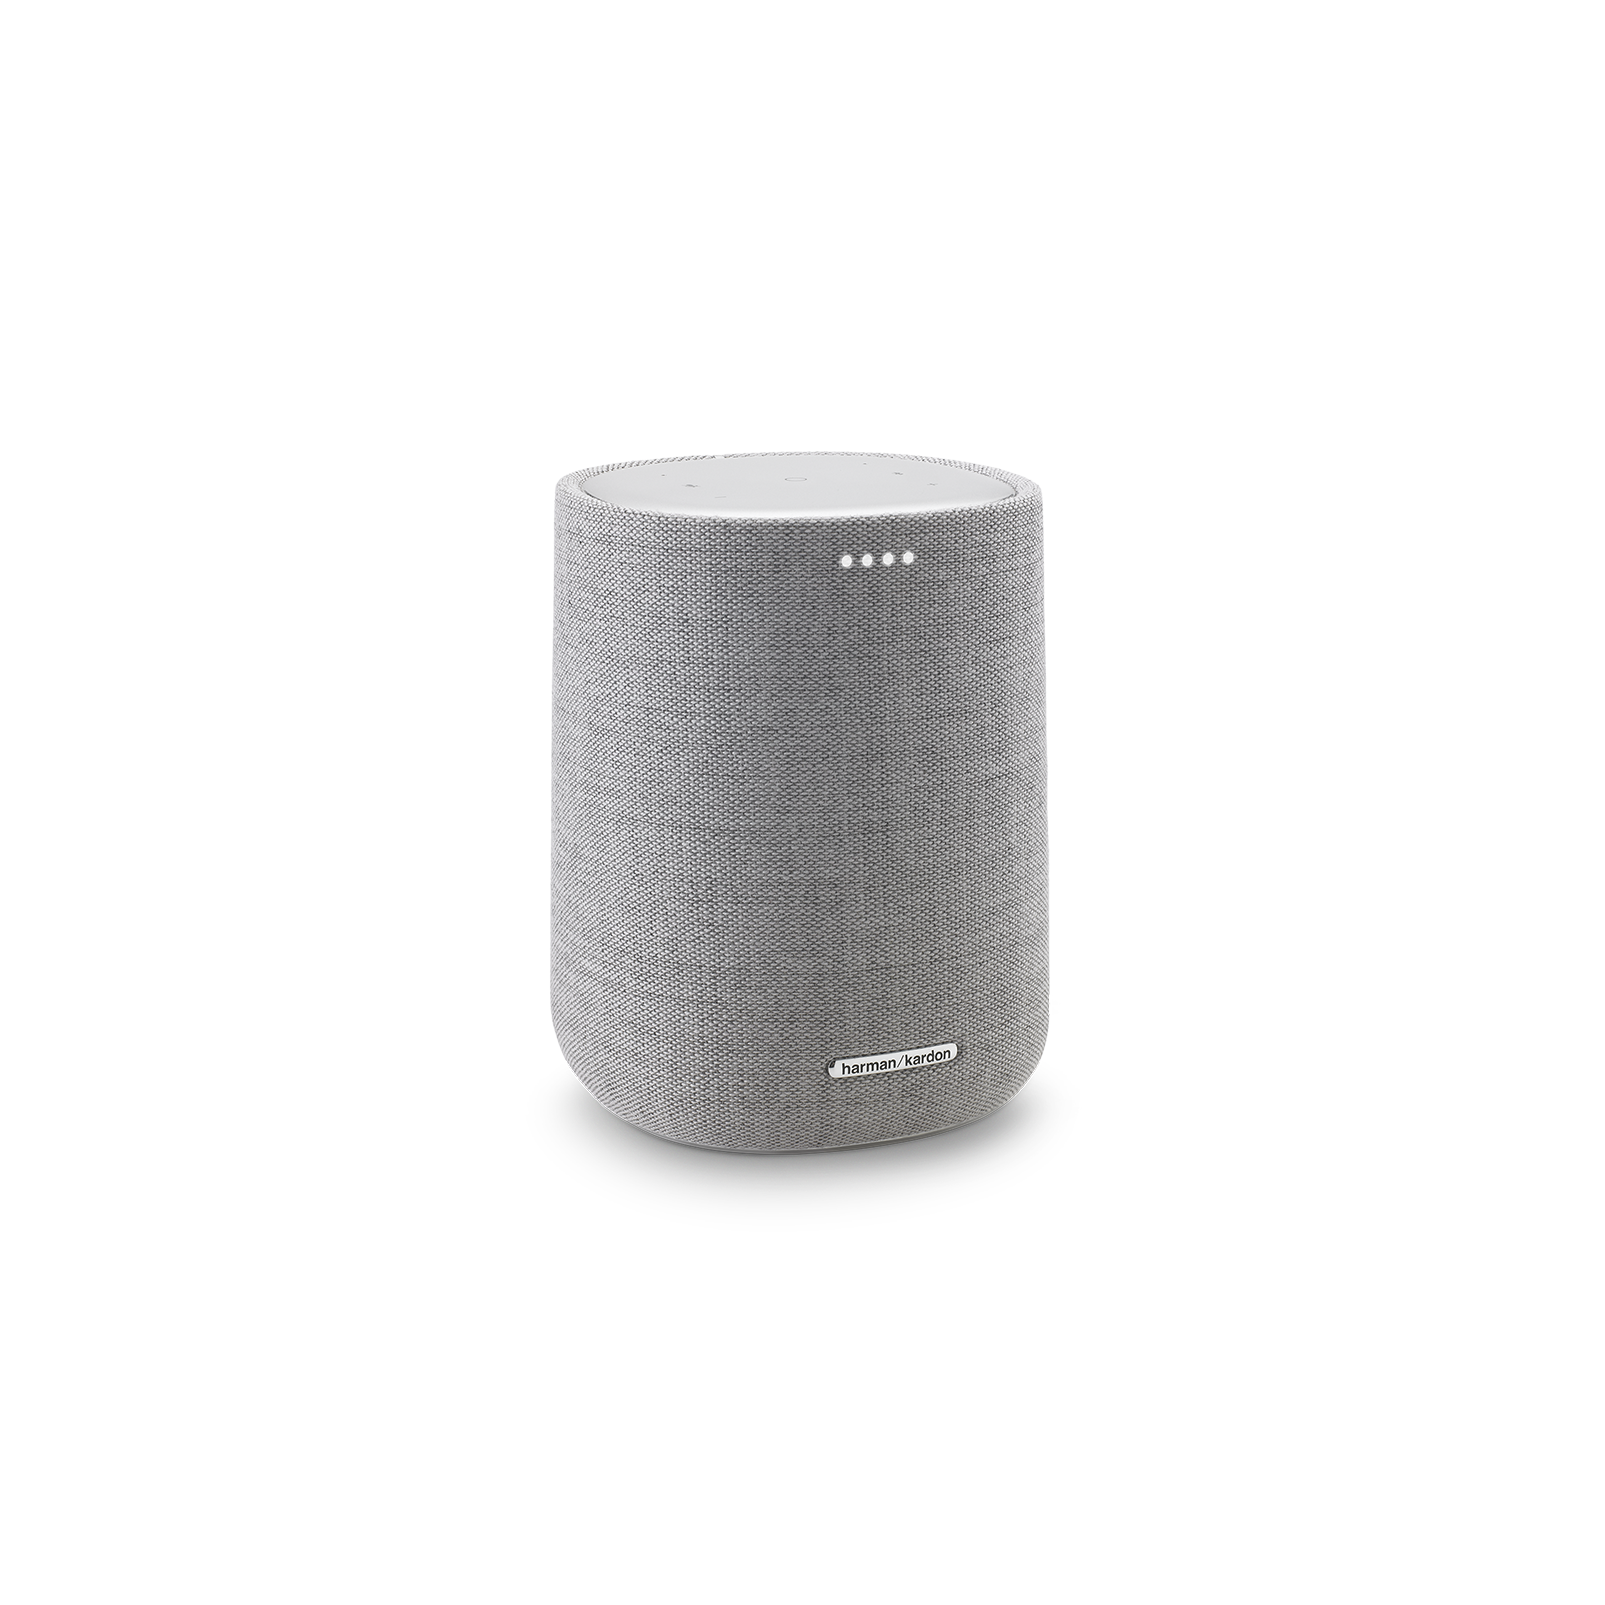 Harman Kardon Citation ONE - Grey - Compact, smart and amazing sound - Hero